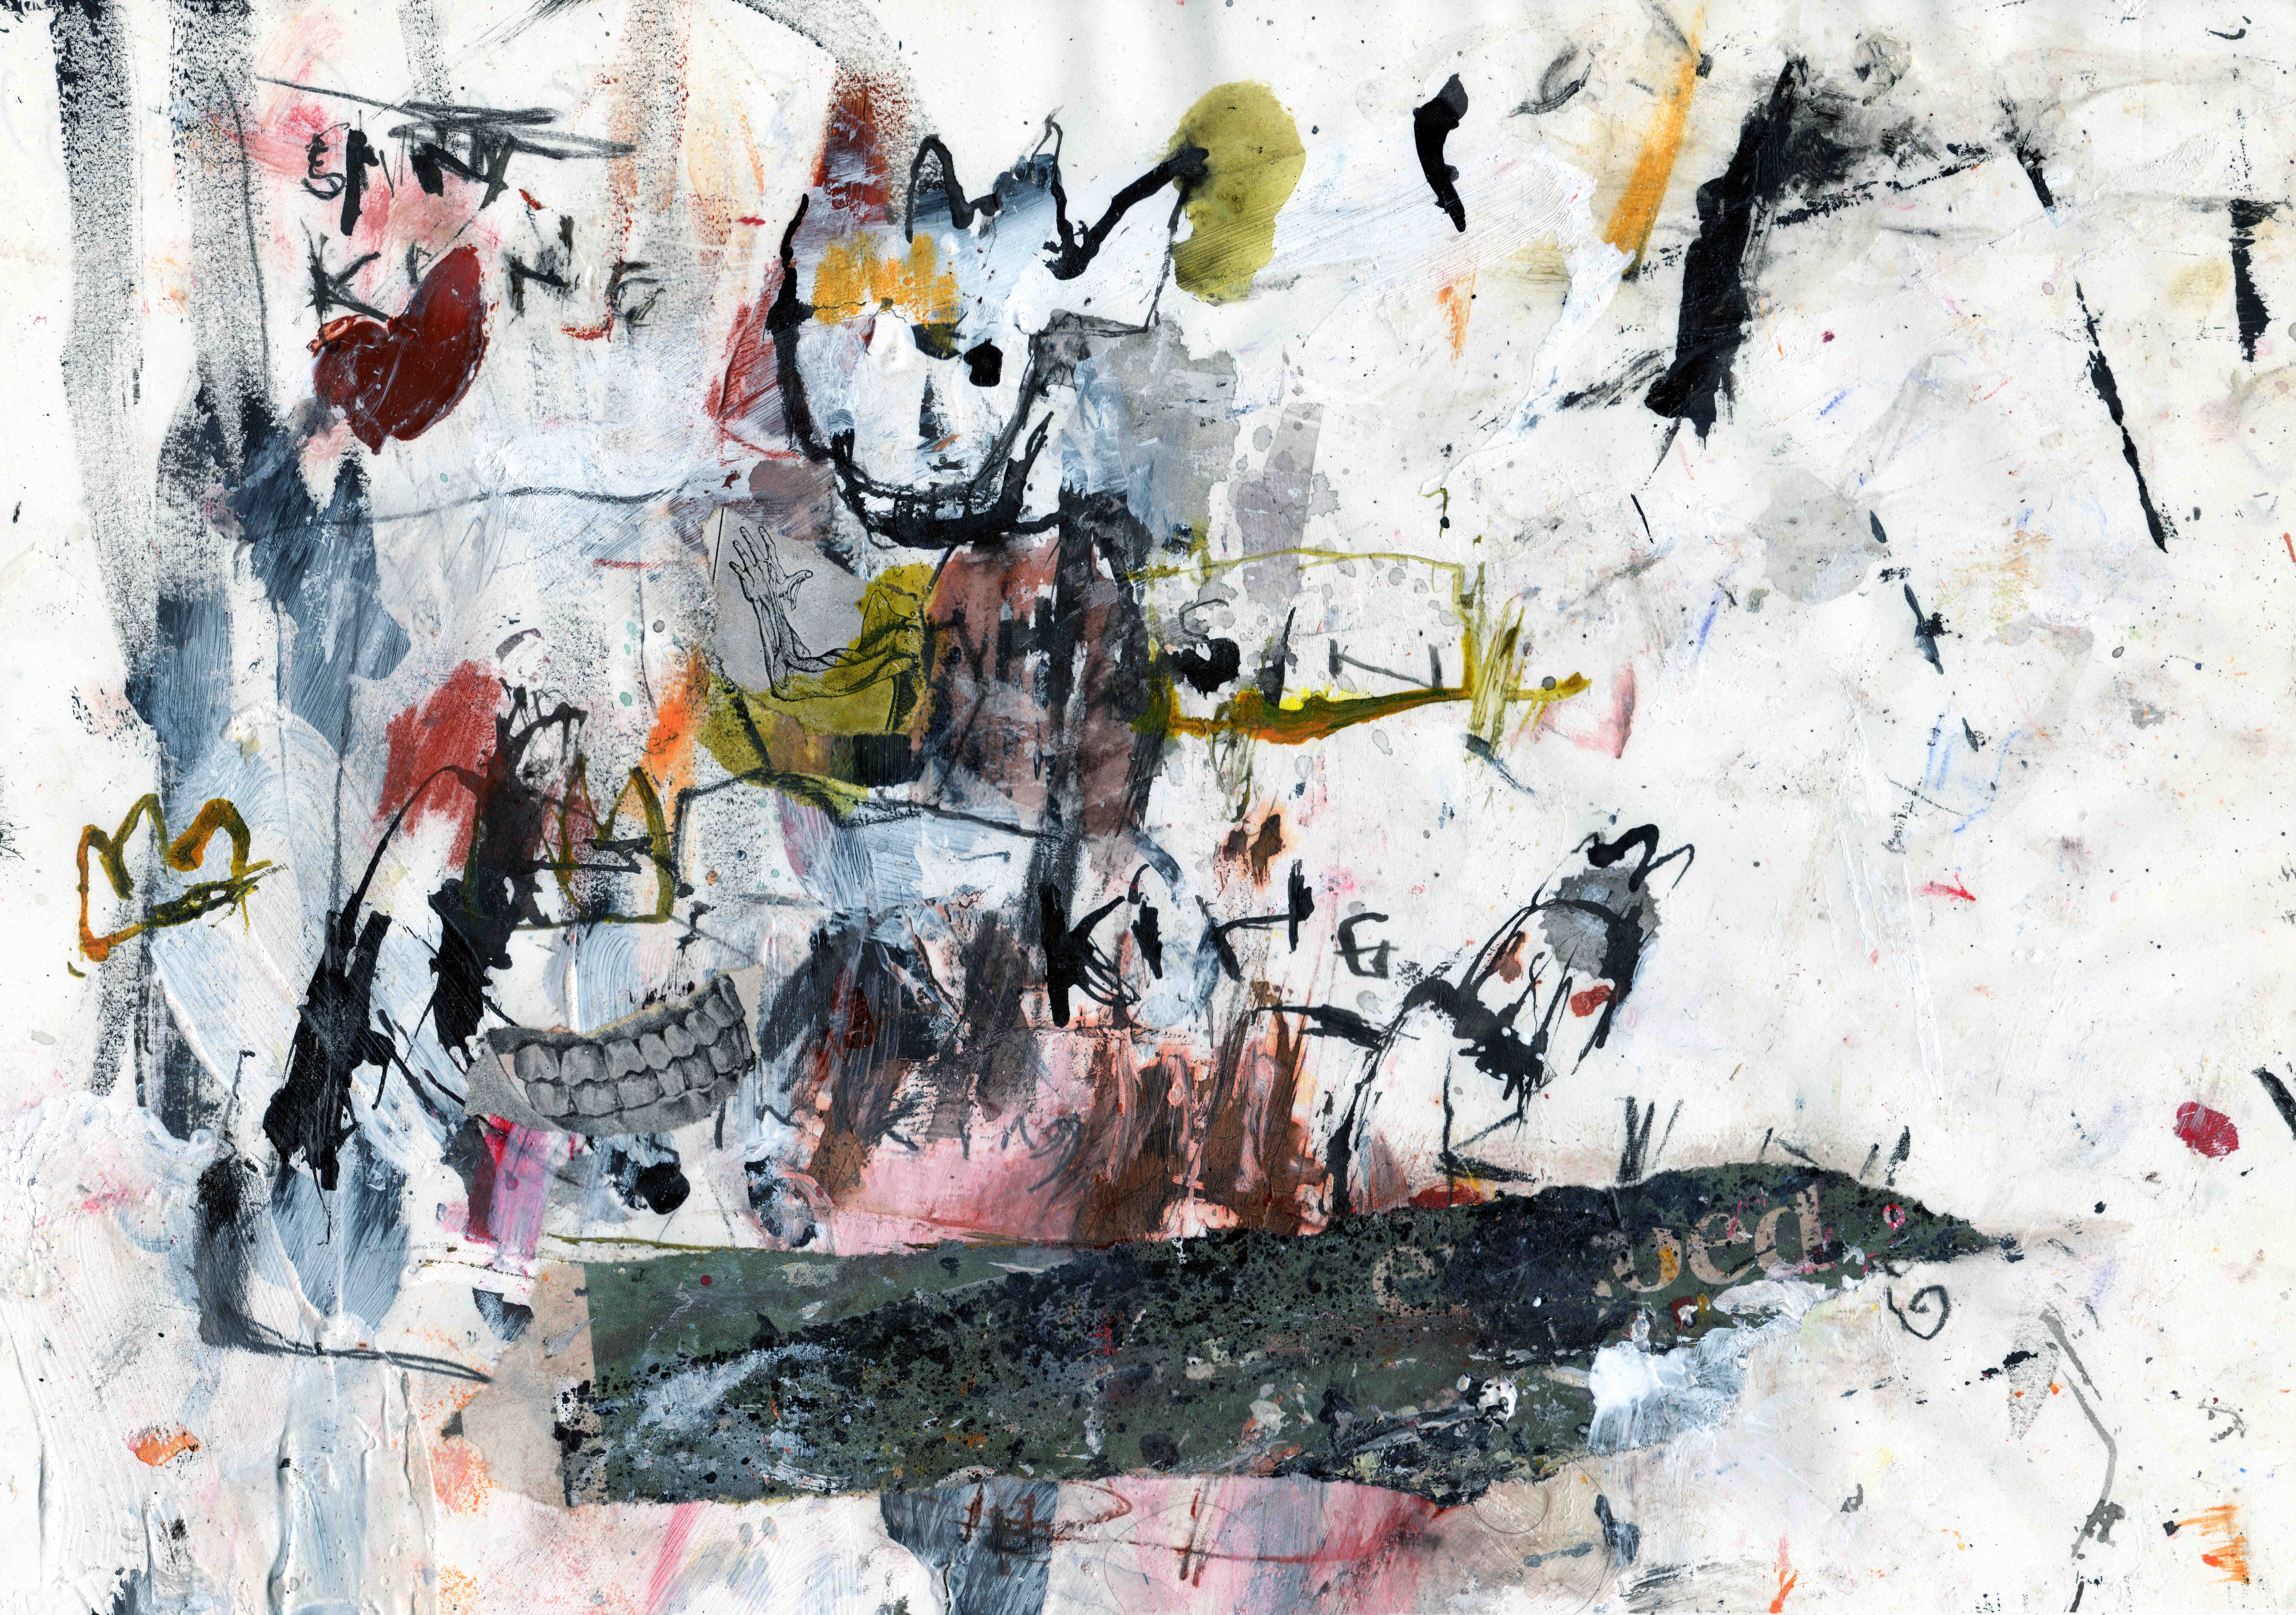 Sin King (sinking), mixed media on paper, 30,3 x 21,1 cm, 2021 MH31